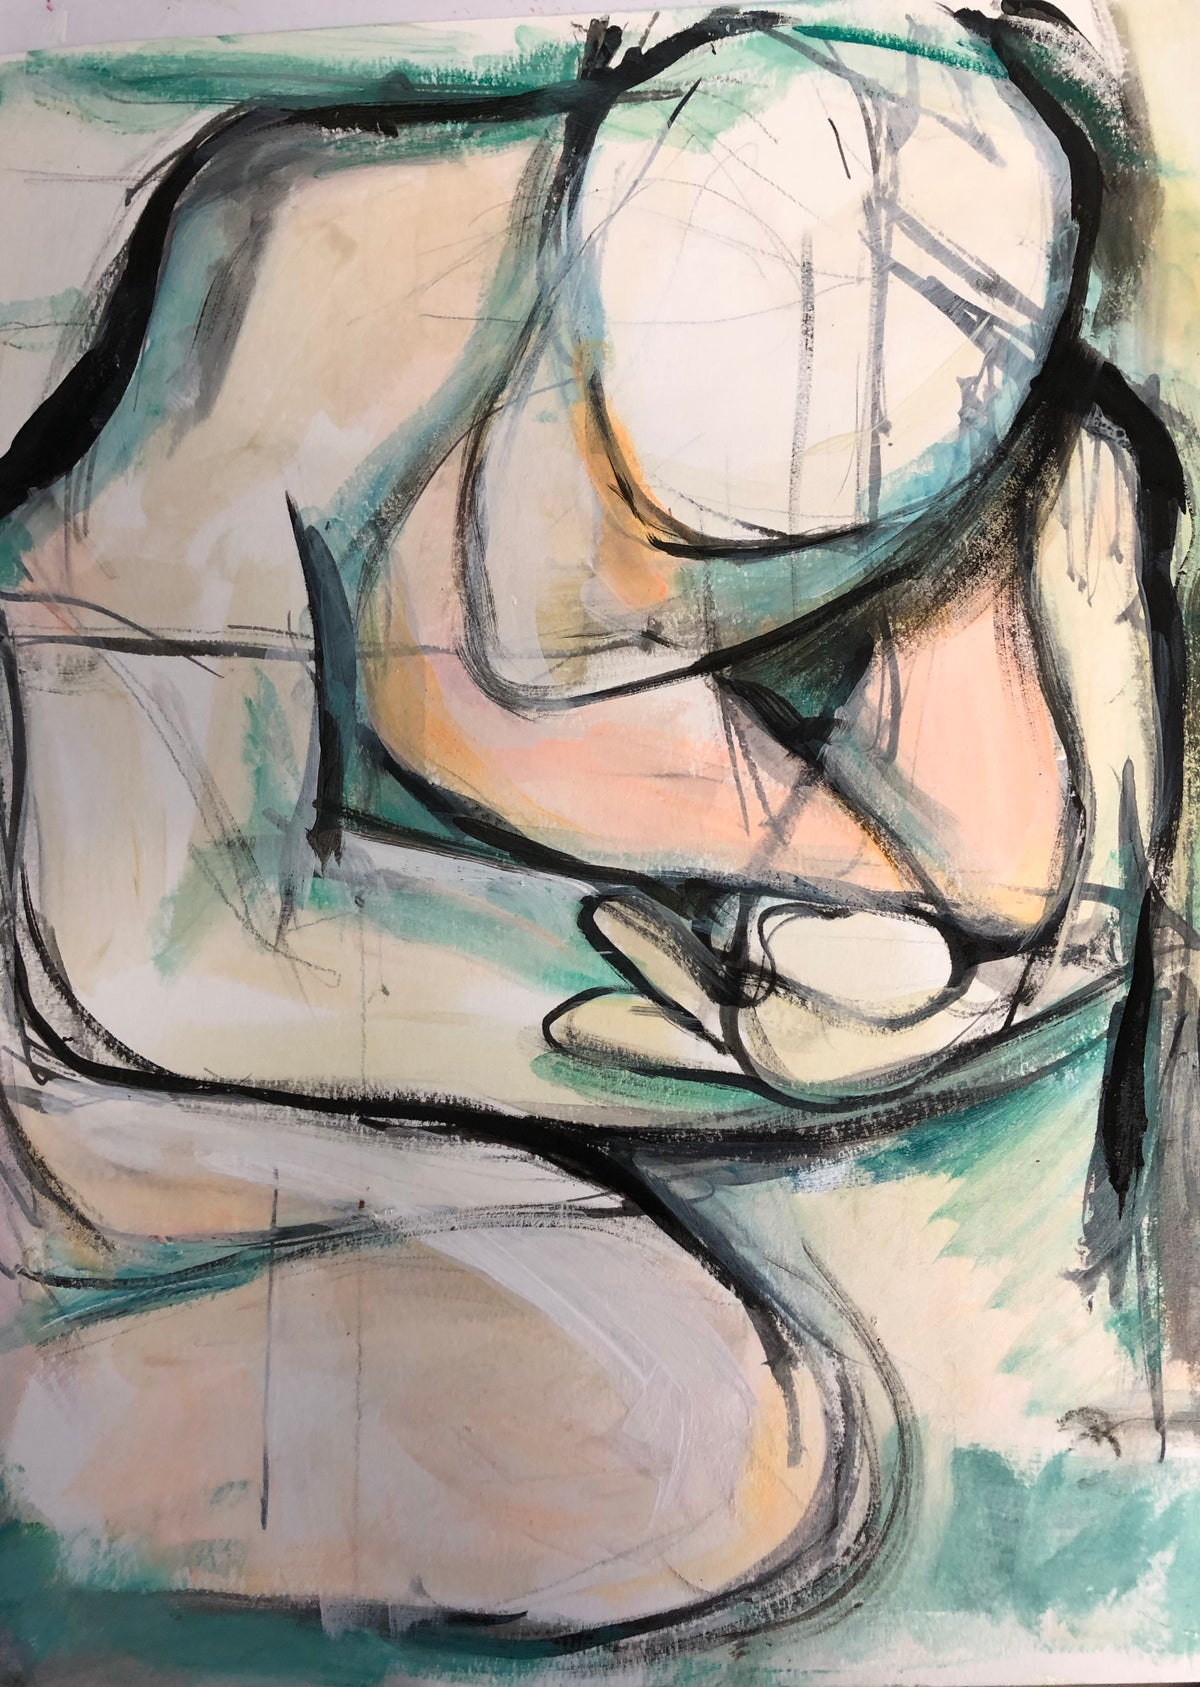 Image of Self Love - original abstract figurative  painting on paper